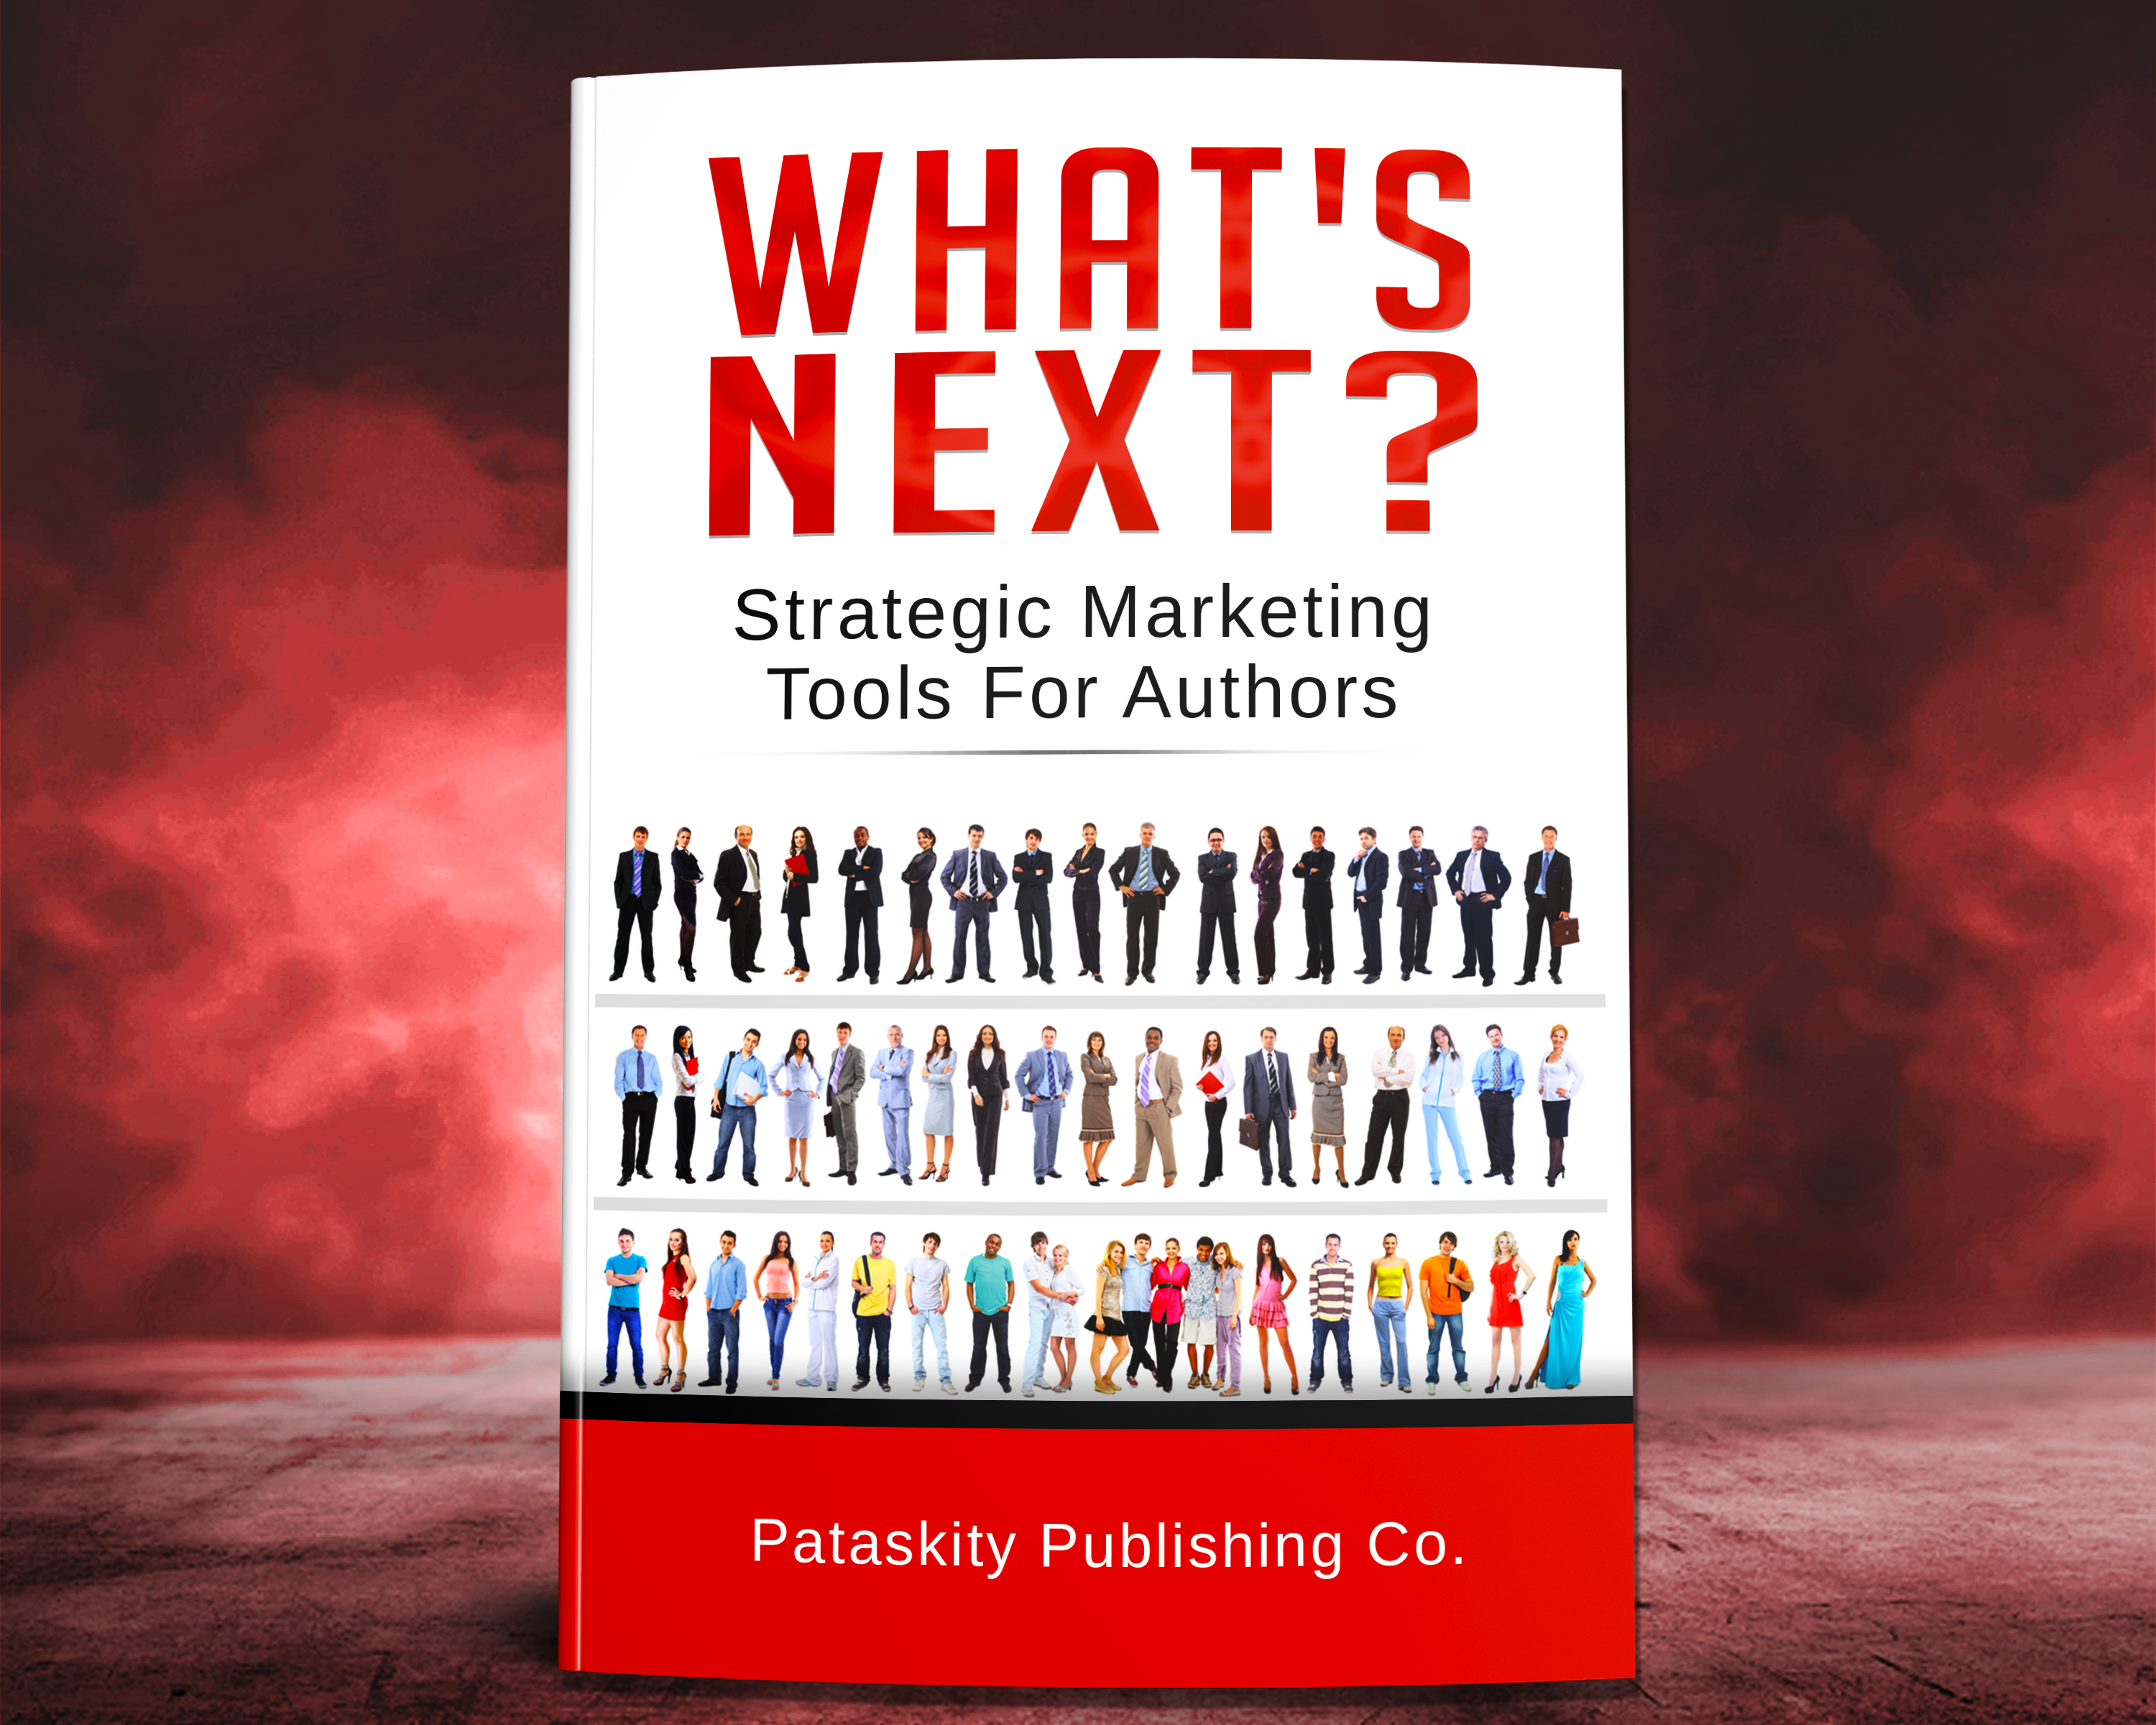 What's Next? Strategic Marketing Tips For Authors